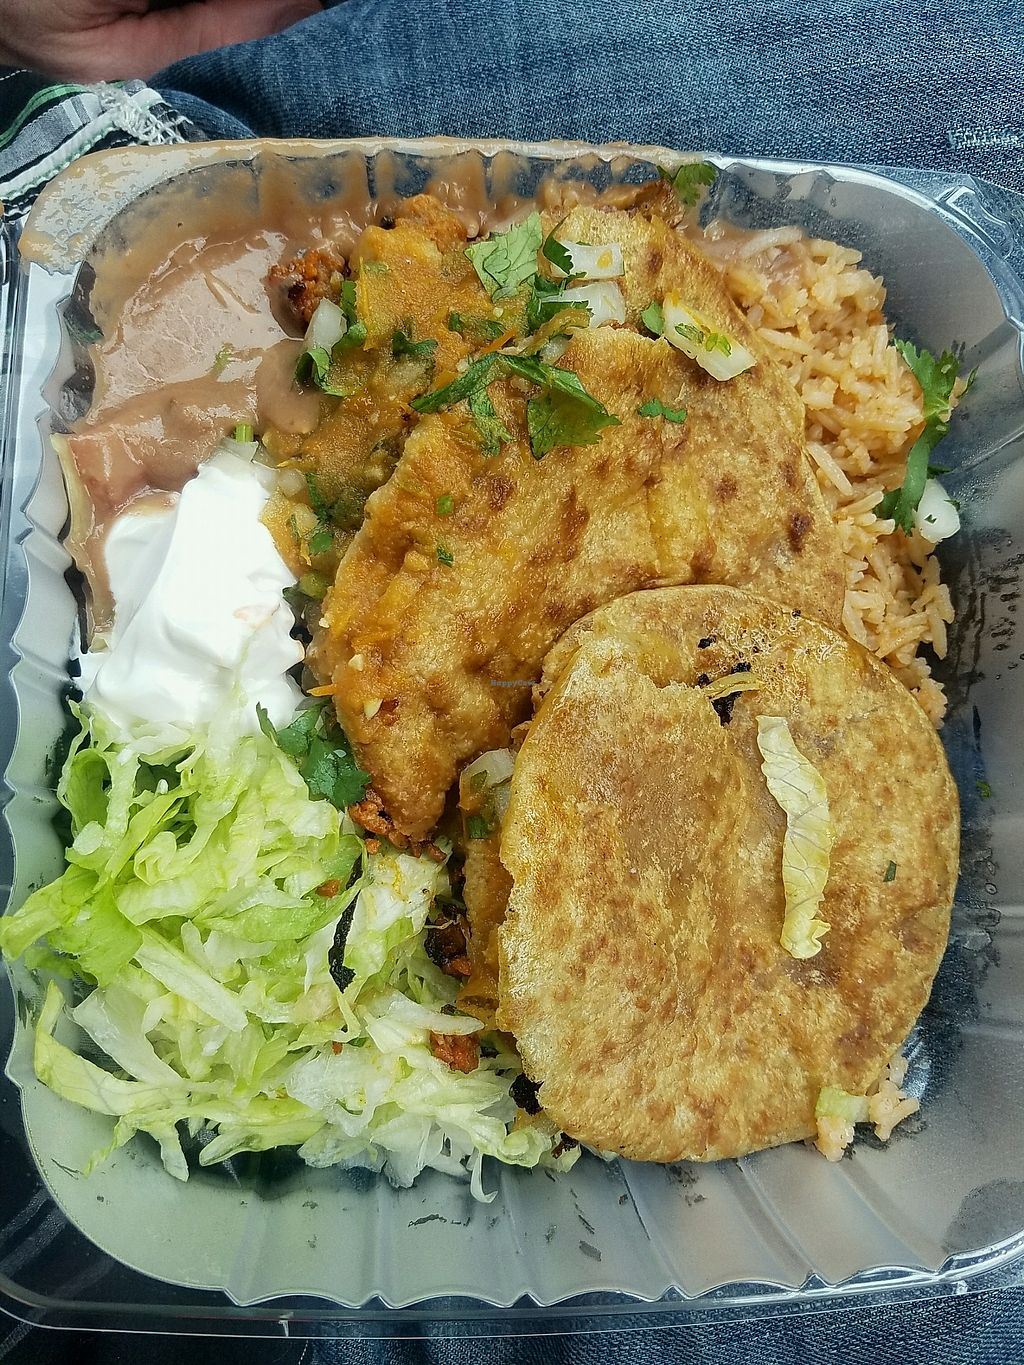 """Photo of Los Gorditos - SE Division & 12th  by <a href=""""/members/profile/MaddieSteffe"""">MaddieSteffe</a> <br/>gorditas <br/> April 7, 2018  - <a href='/contact/abuse/image/21300/381975'>Report</a>"""